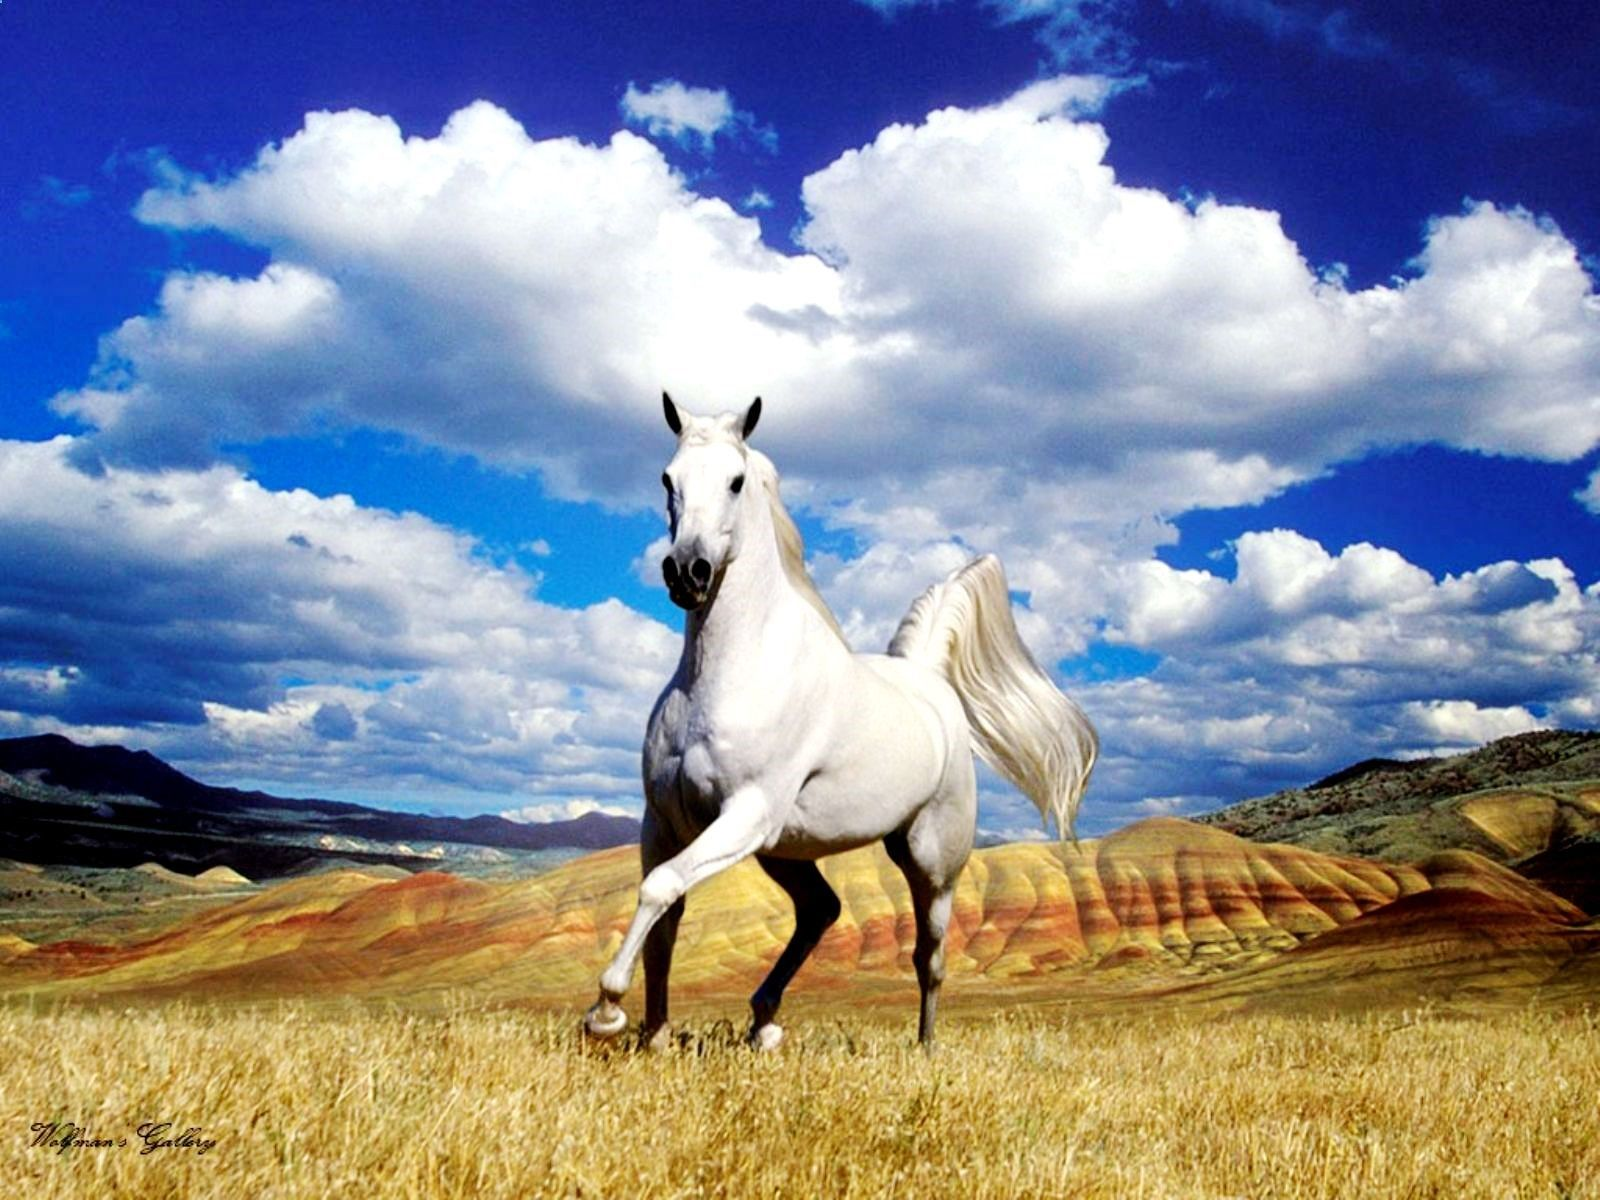 Horses Running White Horses Hd Wallpapers Download Free Wallpapers